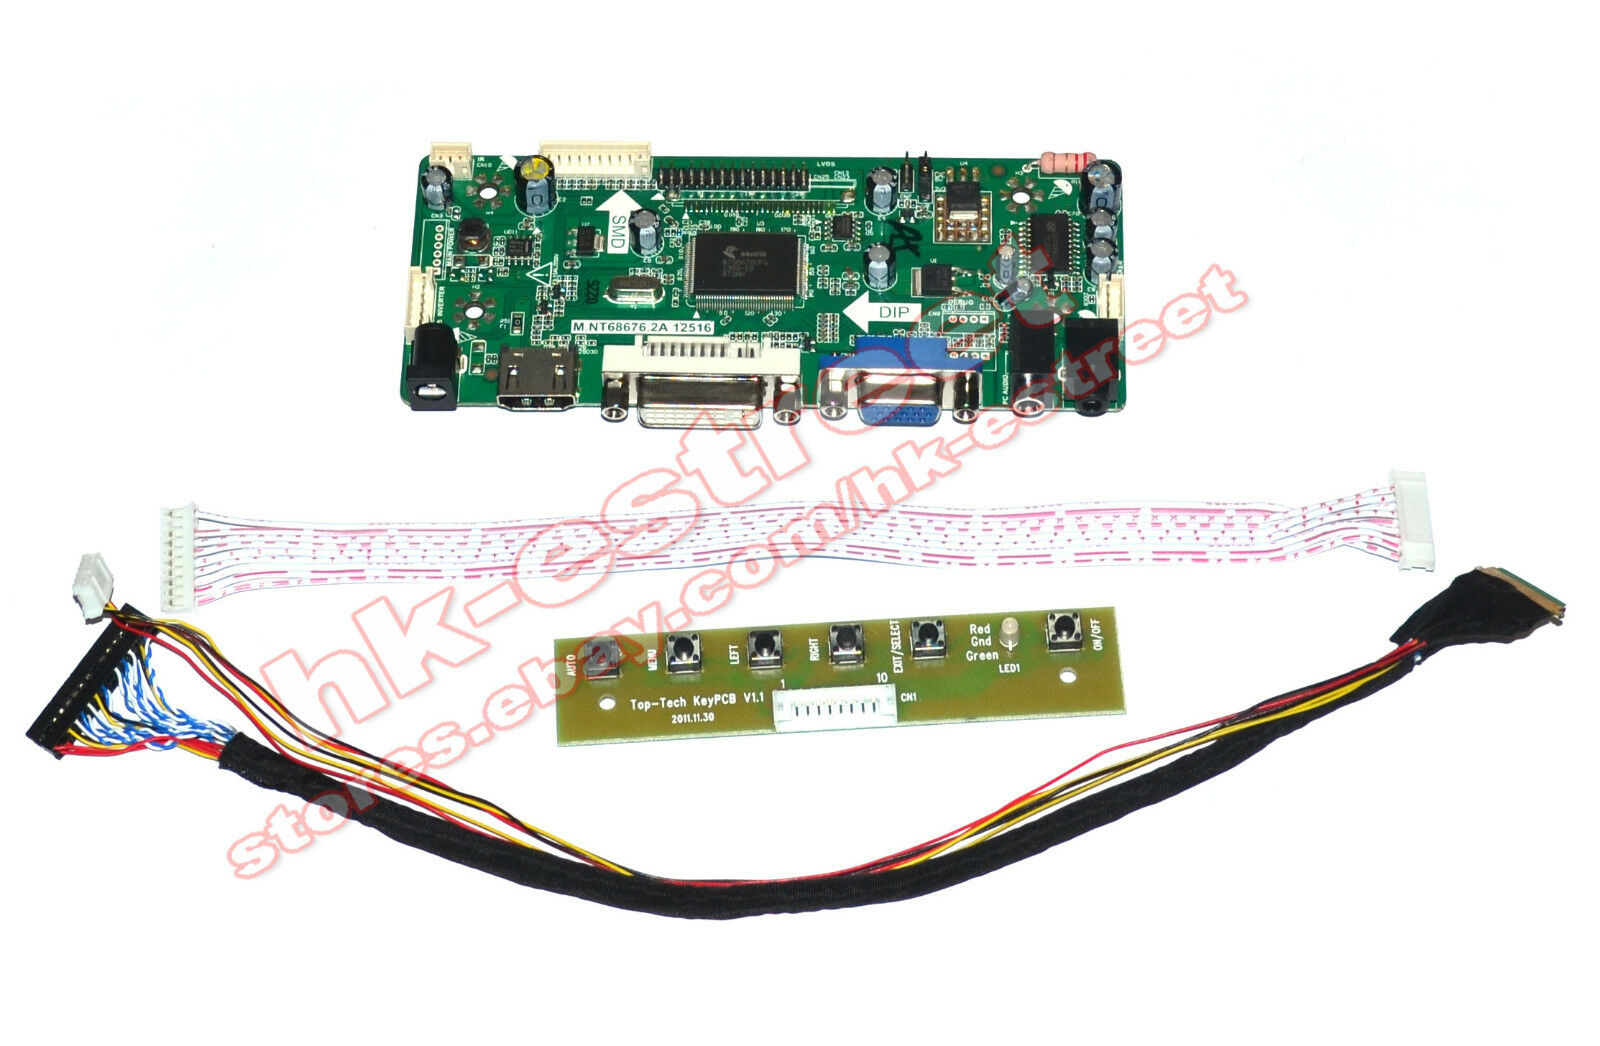 Hdmi Dvi Vga Lcd Controller Board Driver For Ltn173kt01 1440 Breadboard Solder Finished Prototype Pcb Circuit Ebay 1 Of 7free Shipping